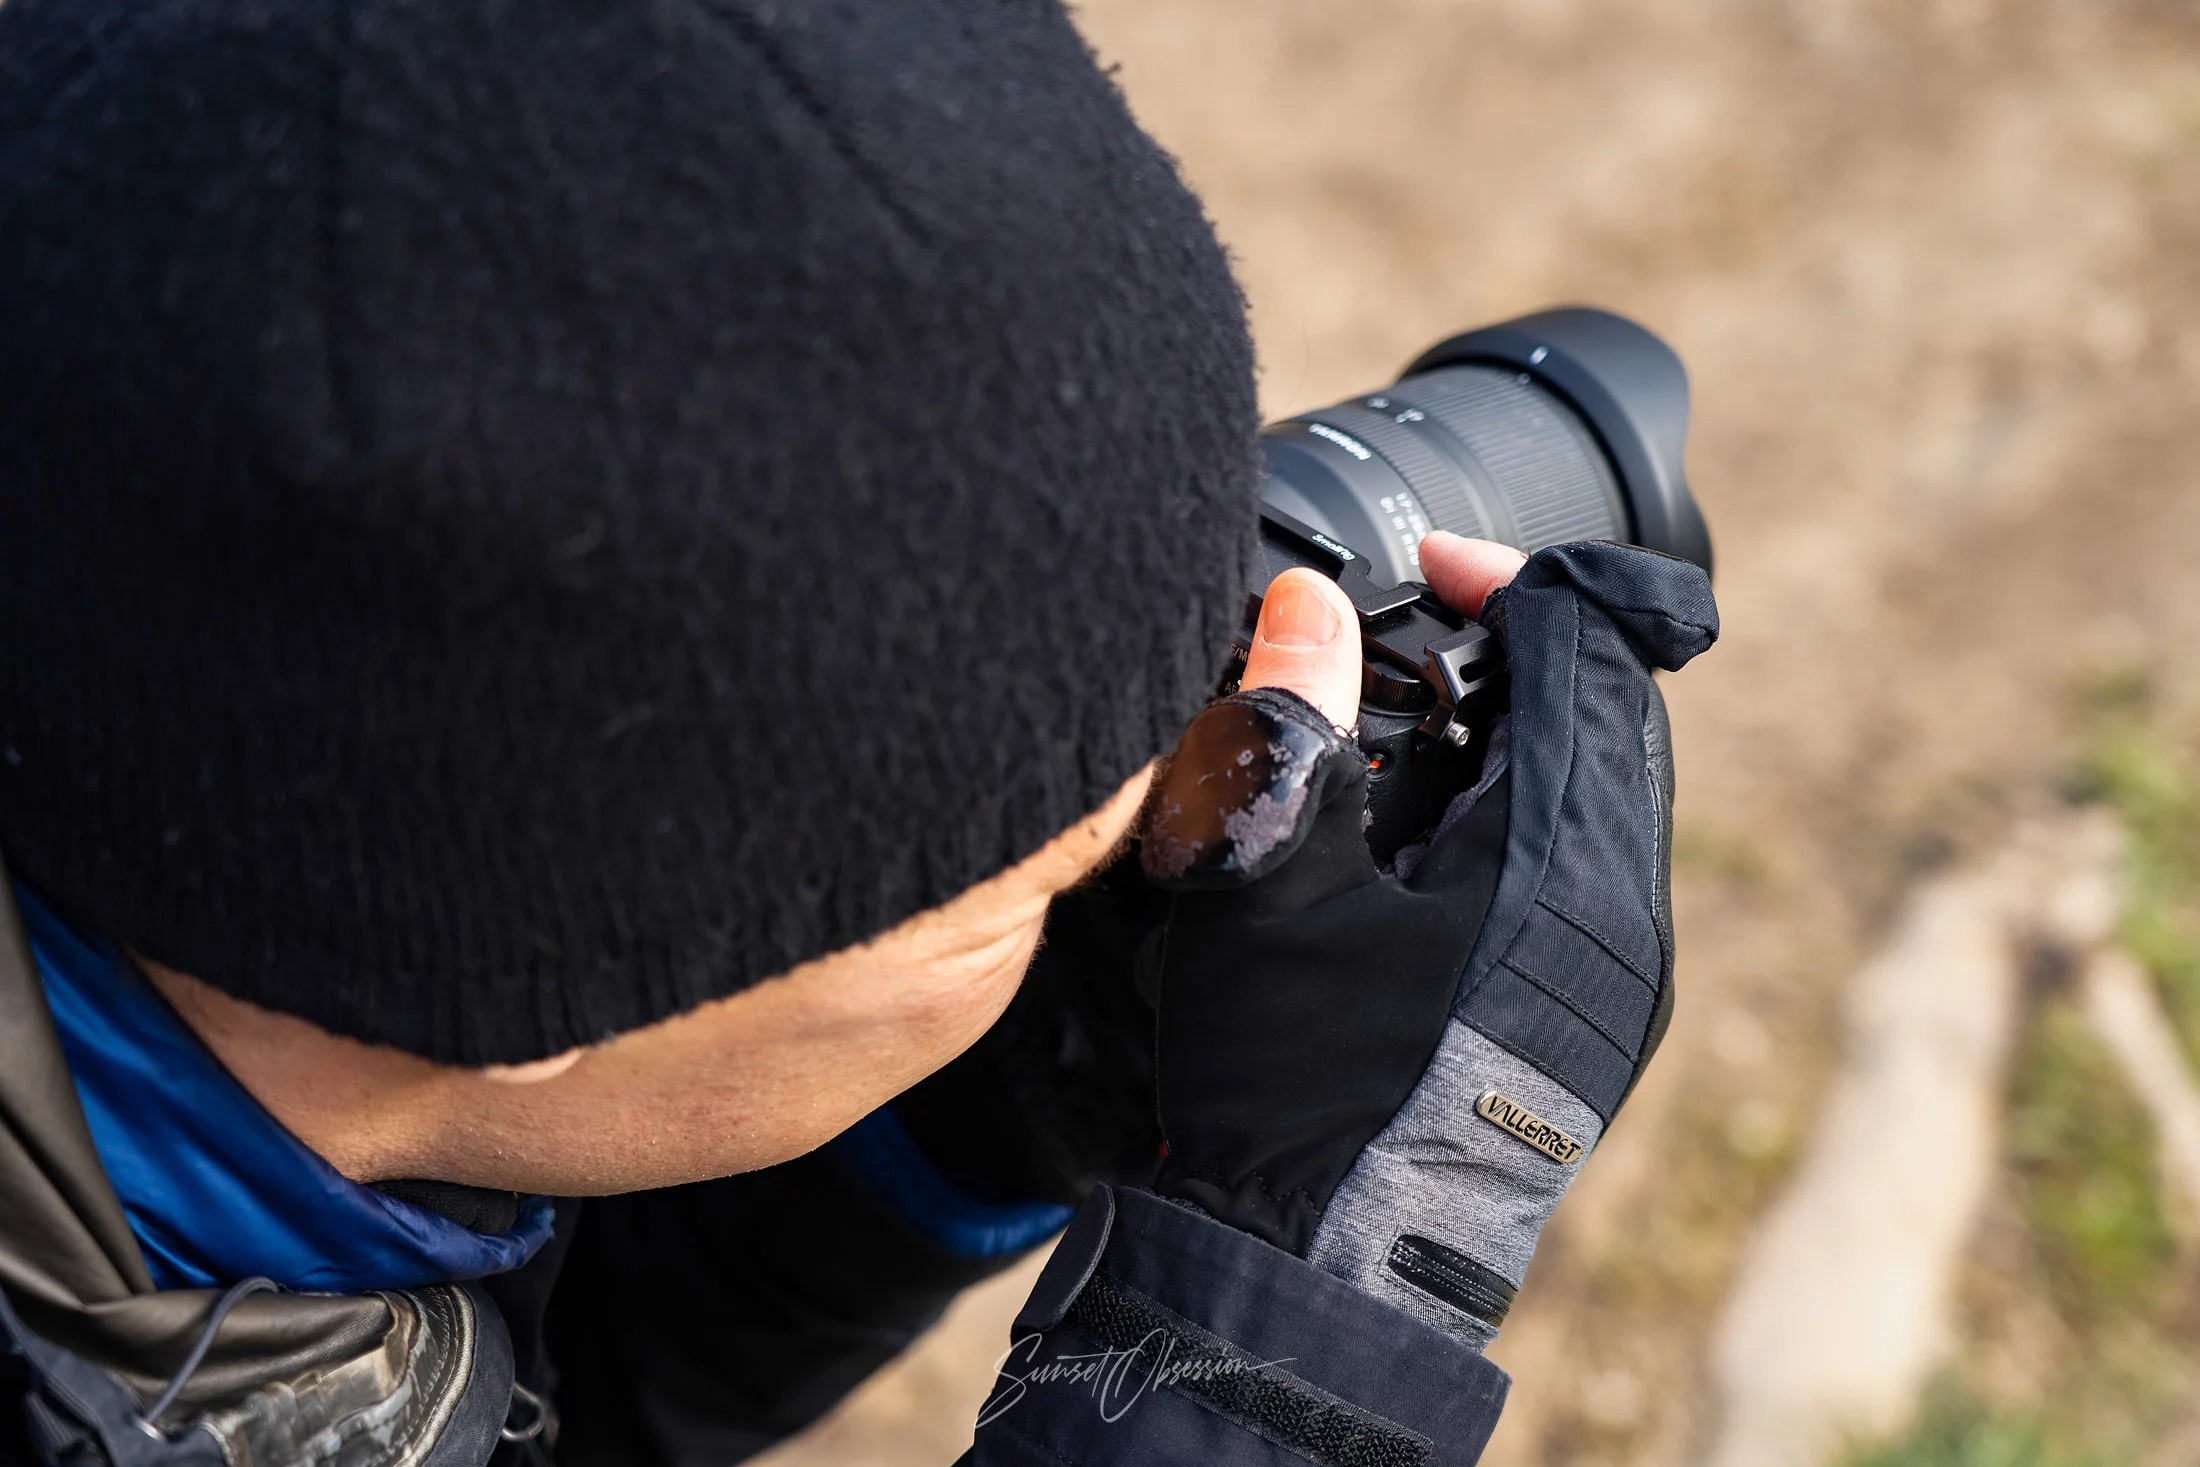 On a photoshoot with the Vallerret Markhof Pro 2.0 photography gloves